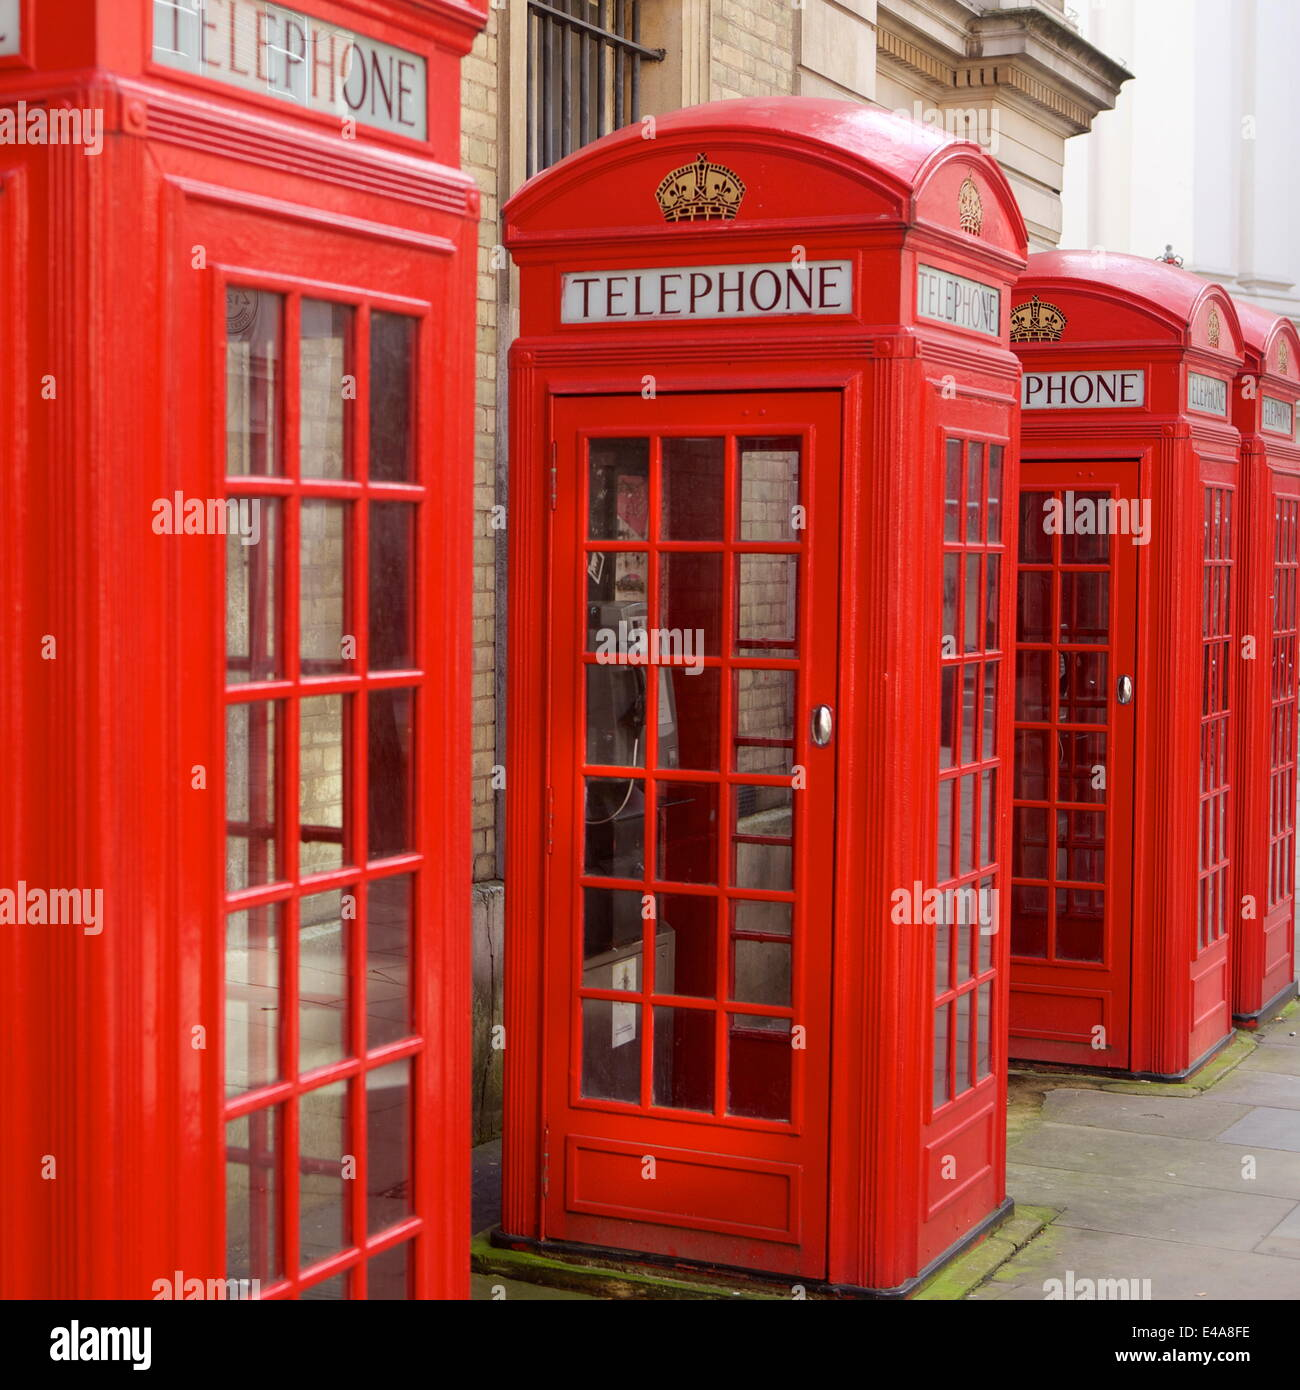 Row of red telephone booths design by Sir Giles Gilbert Scott, near Covent Garden, London, England, United Kingdom, - Stock Image